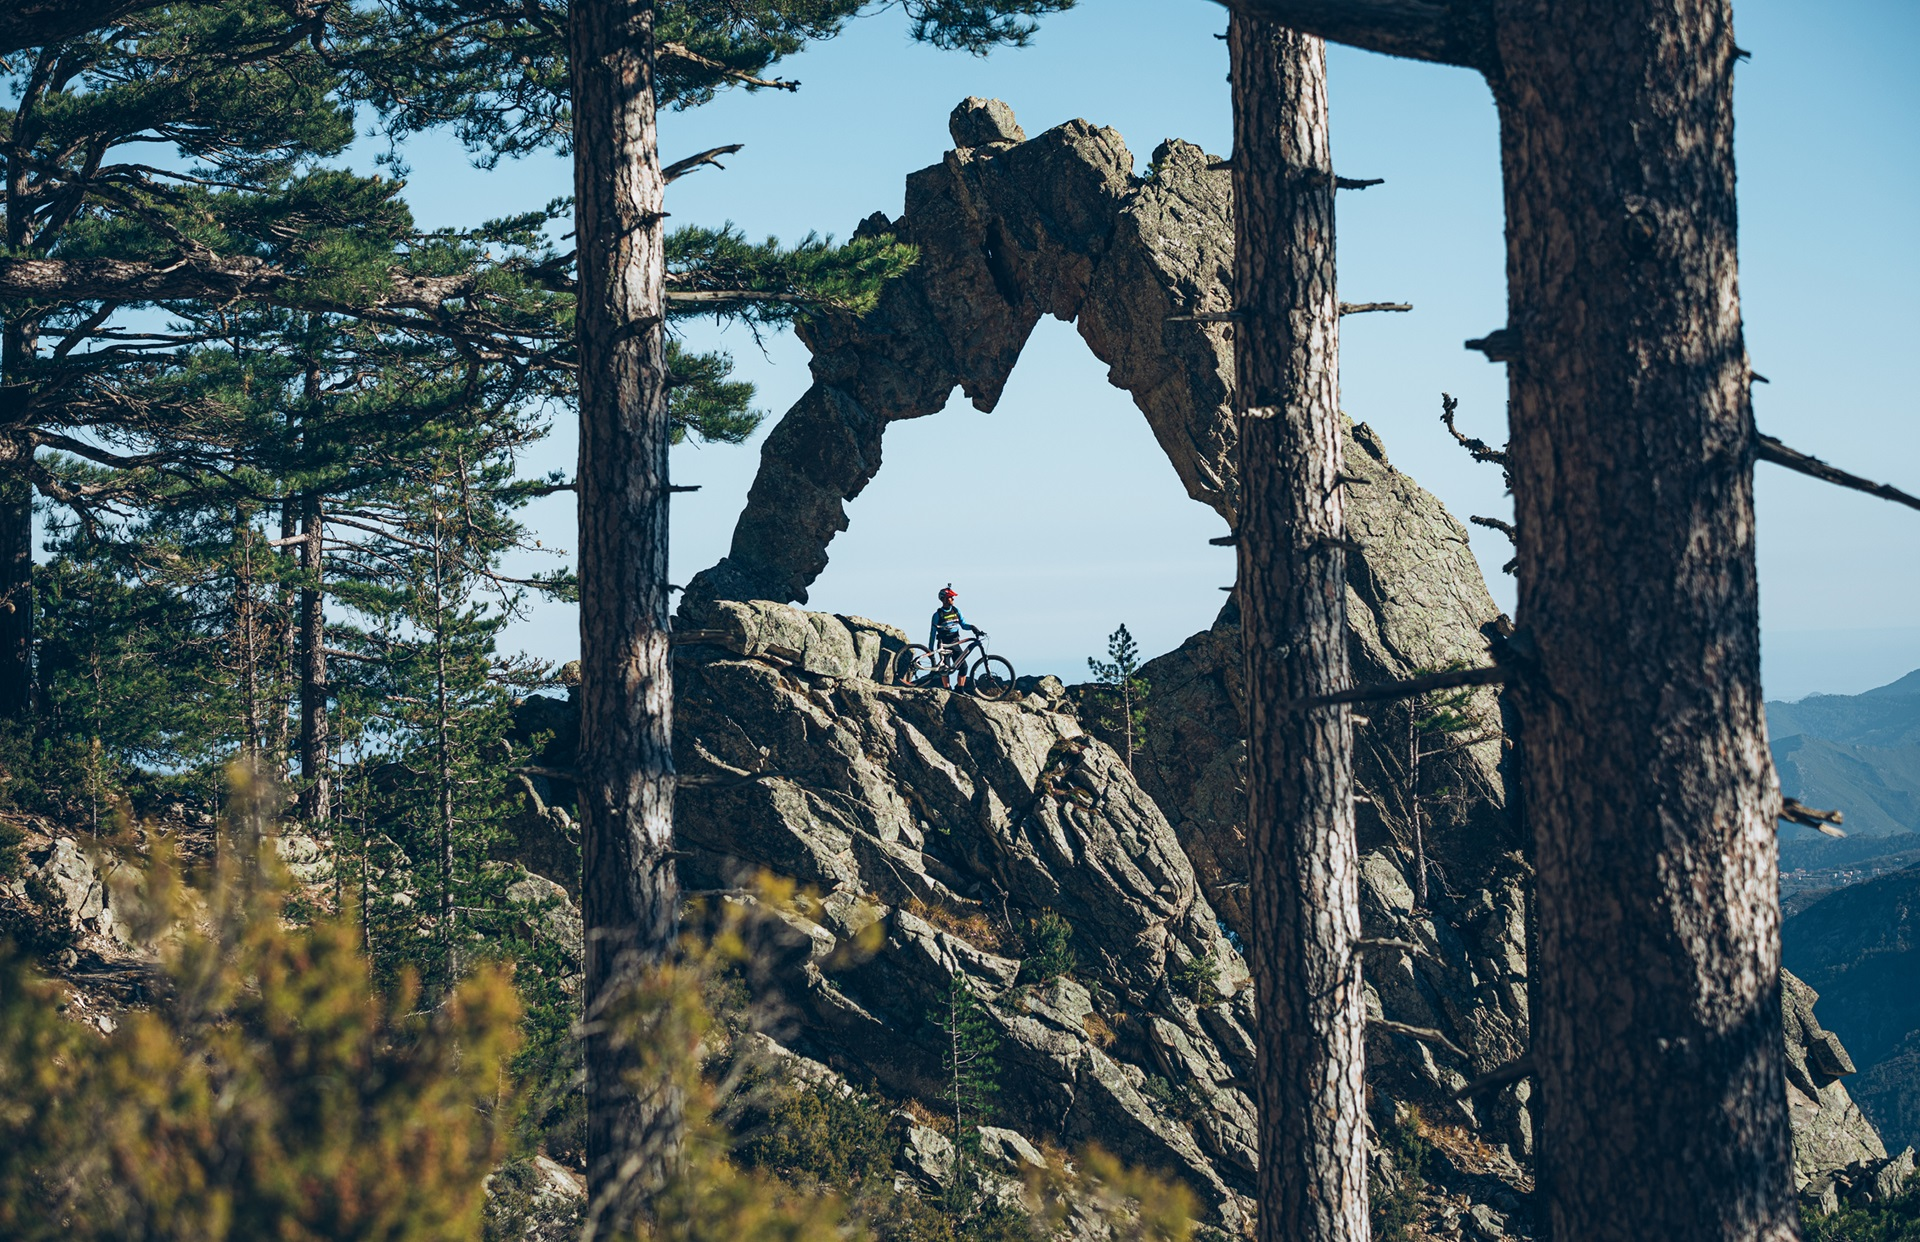 Haibike Hero Xavier Marovelli on XDURO AllMtn 10.0 eMTB in the mountains